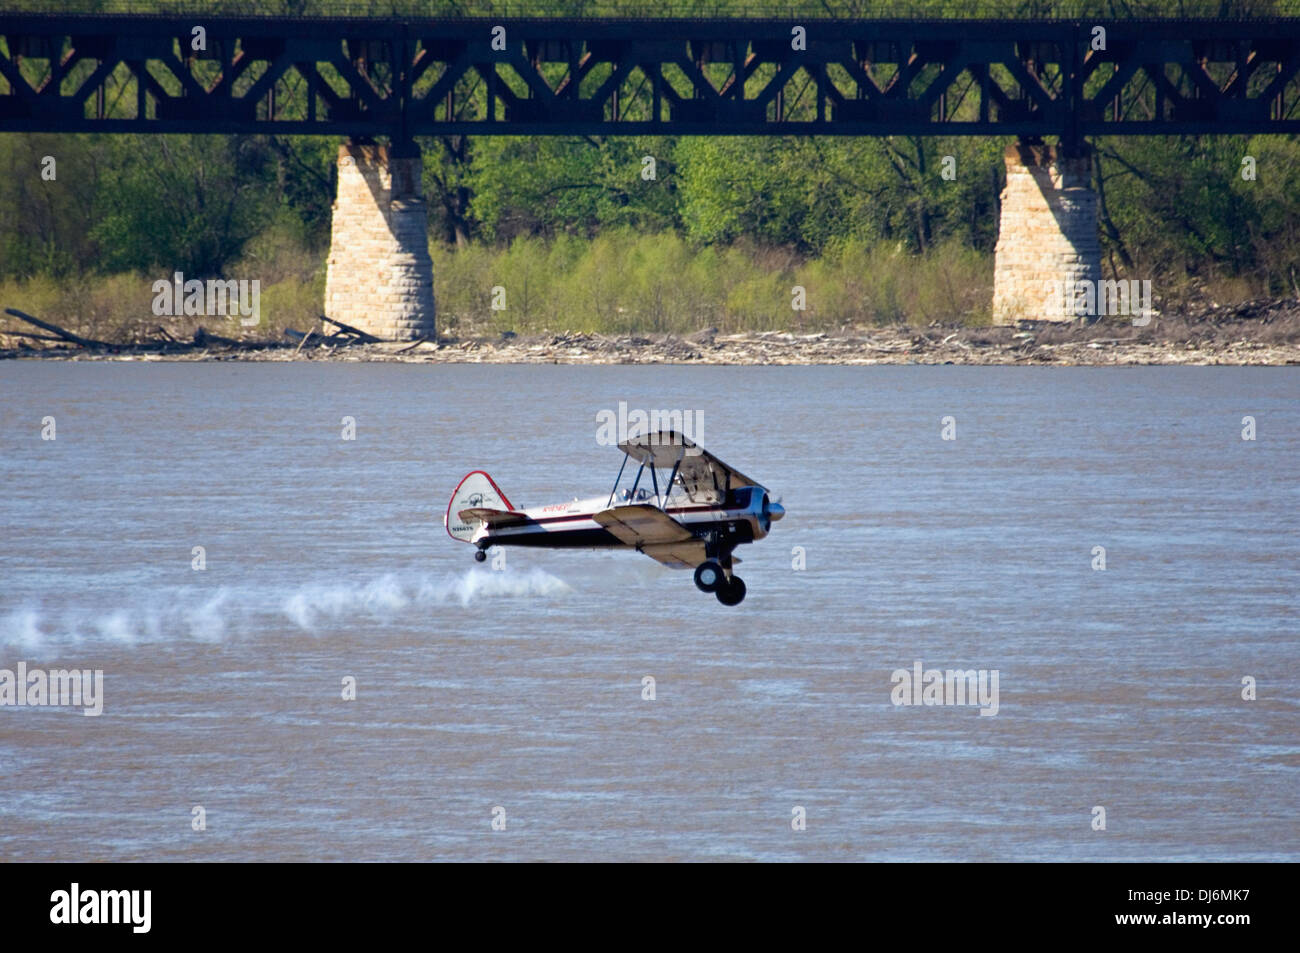 Biplane Flying Over the Ohio River during Thunder Over Louisville - Stock Image